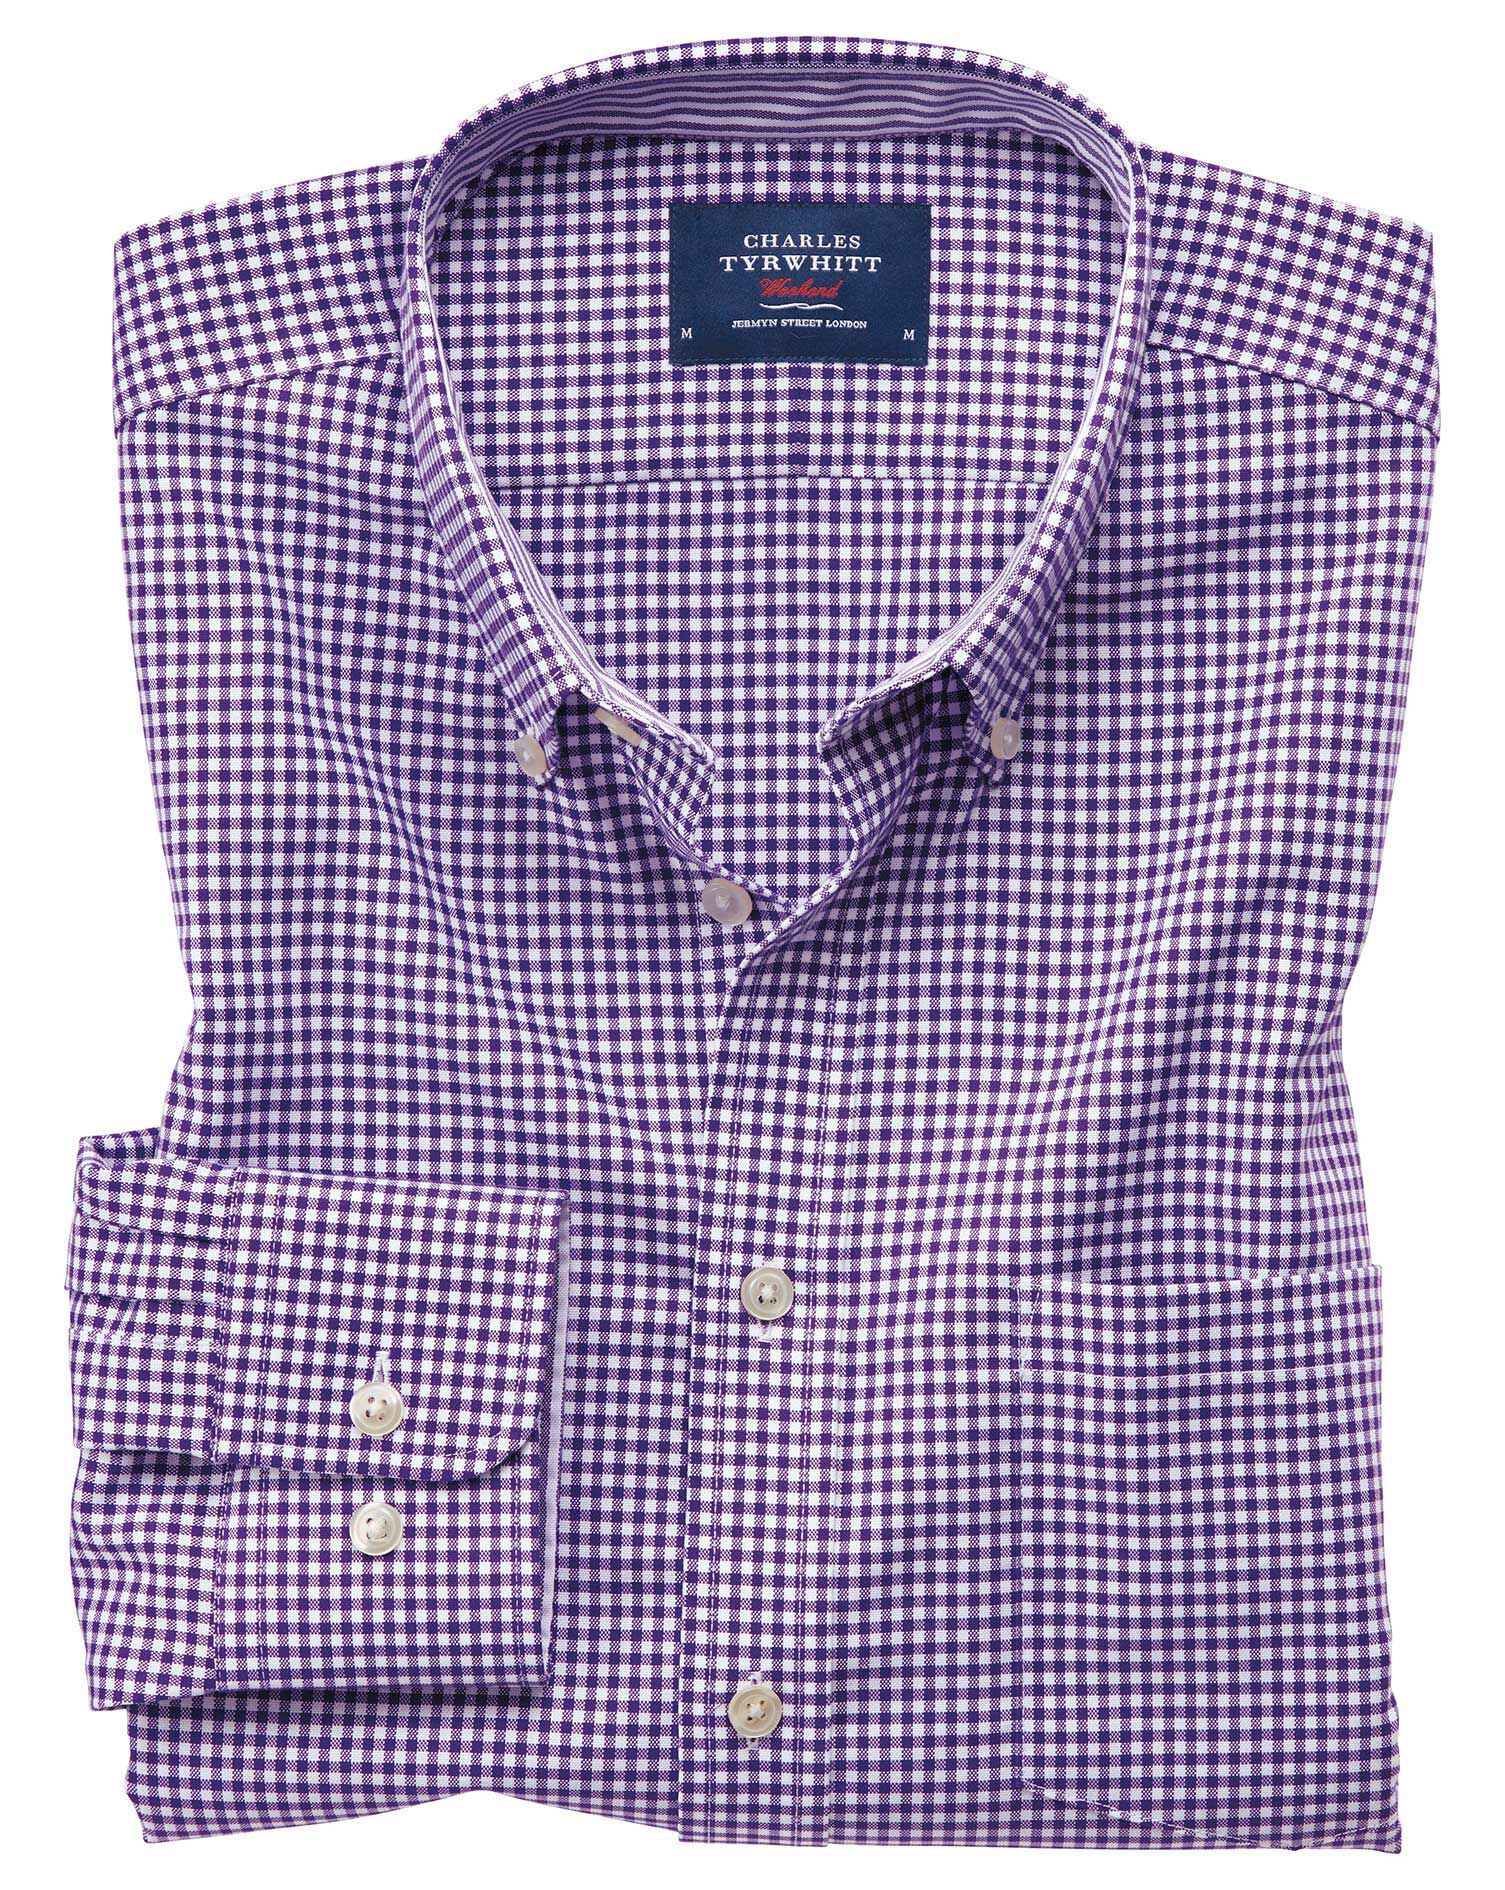 Slim Fit Button-Down Non-Iron Oxford Gingham Purple Cotton Shirt Single Cuff Size XS by Charles Tyrw